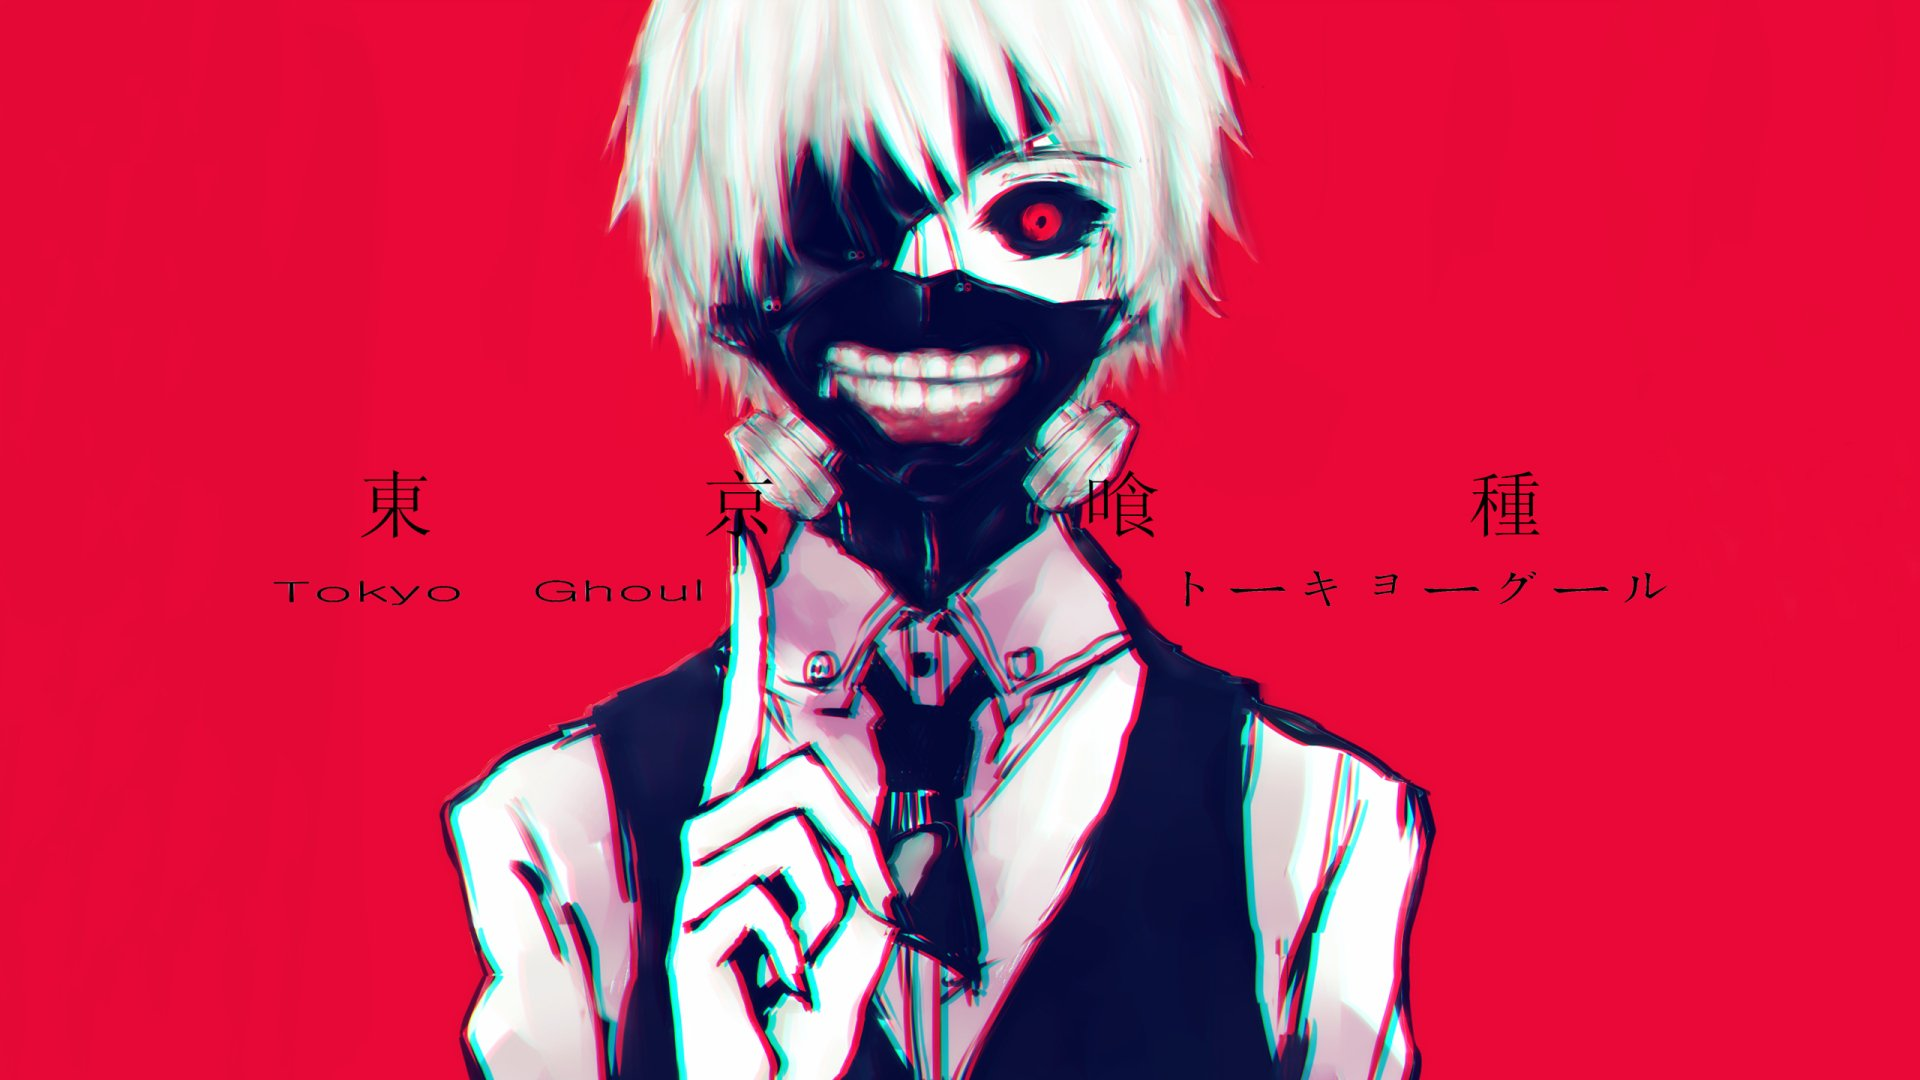 Tokyo Ghoul Full HD Wallpaper And Background Image